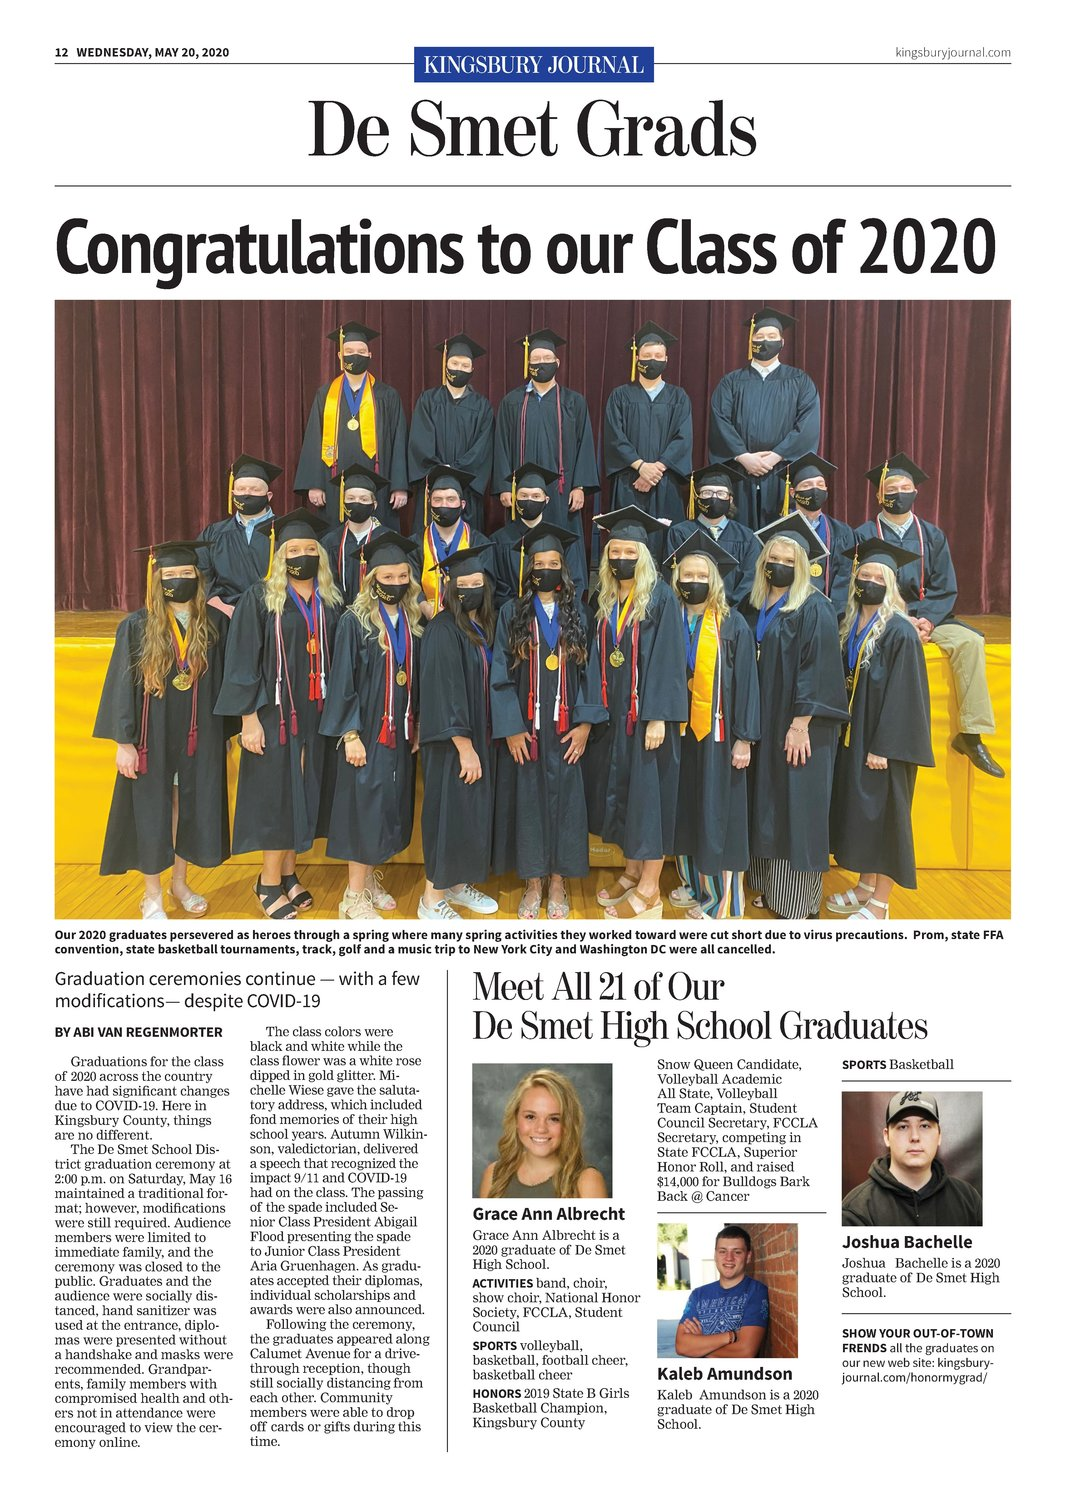 Graduation 2020 was a focal point of the first issue.